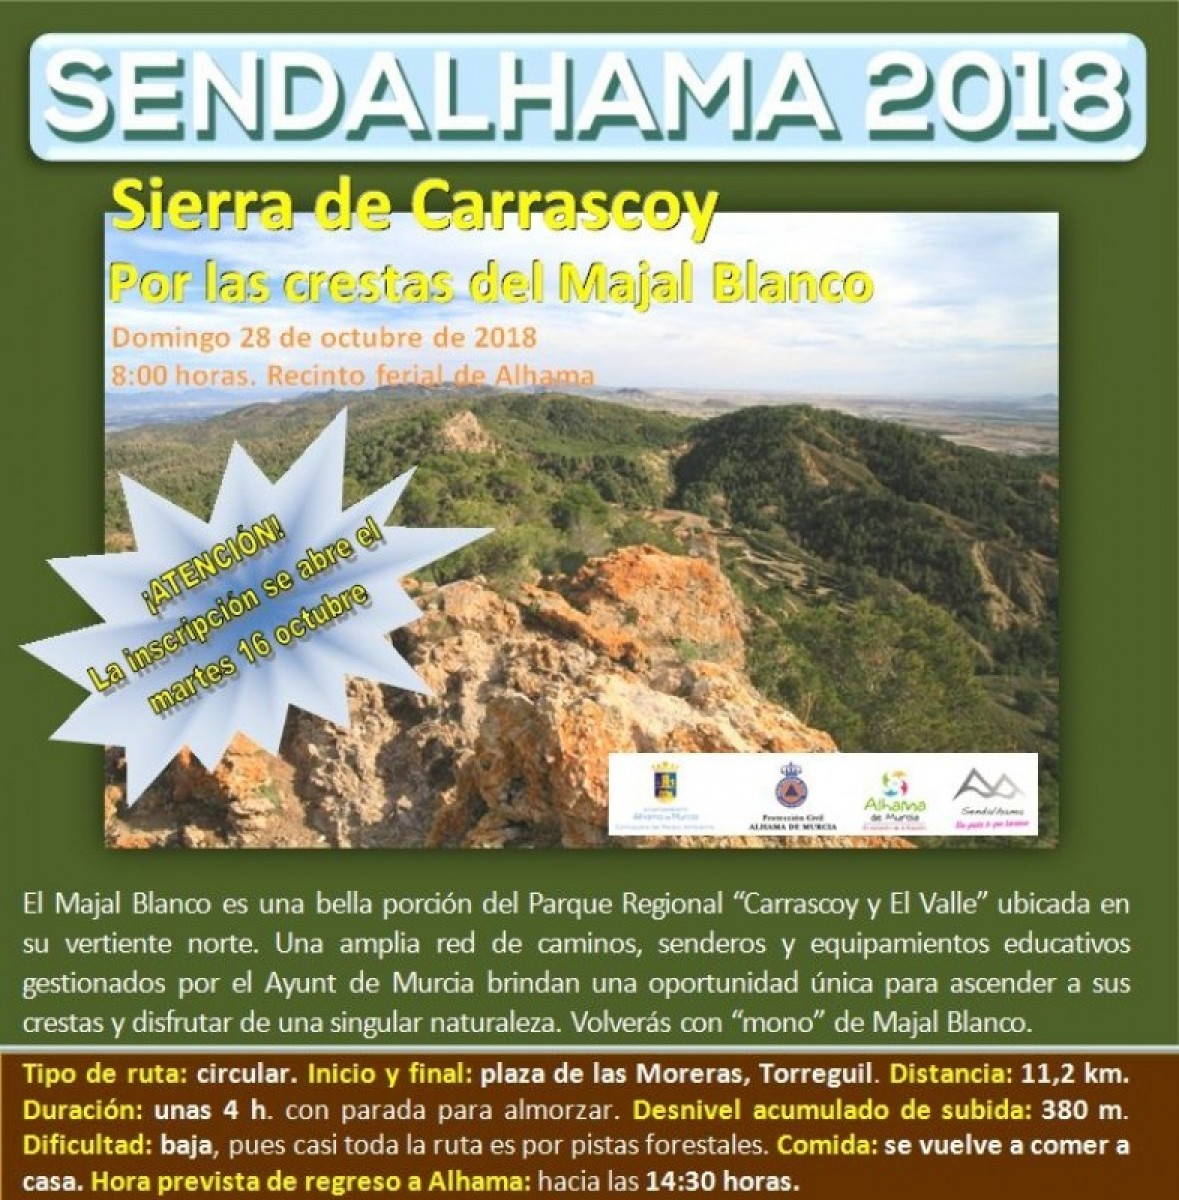 Registration for Sendalhama walks on 28th October and 11th November opens on October 16th